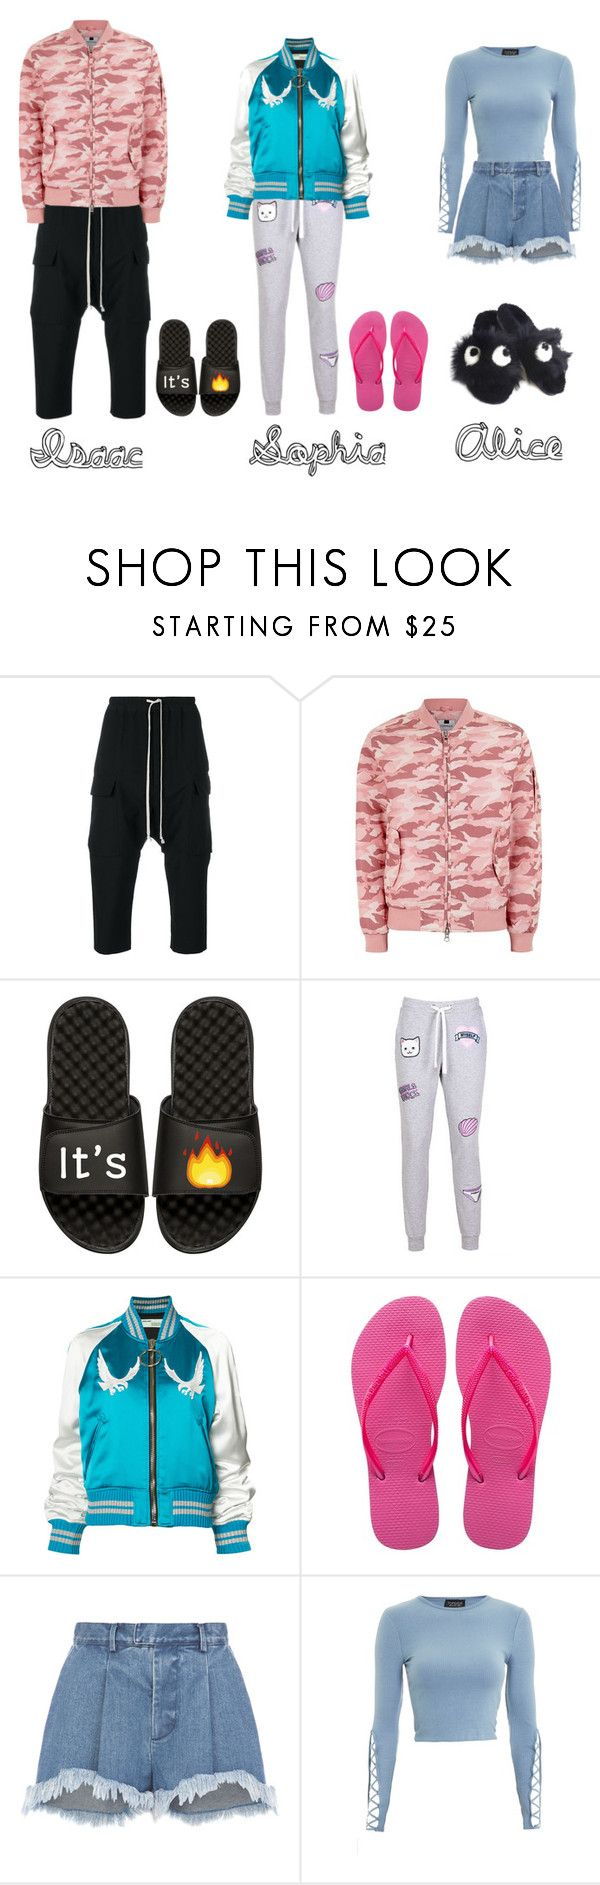 """Play day from Paris.."" by amanda-elpidio on Polyvore featuring moda, Rick Owens, Topman, iSlide, Local Heroes, Off-White, Havaianas, Ksenia Schnaider, Topshop e Anya Hindmarch"